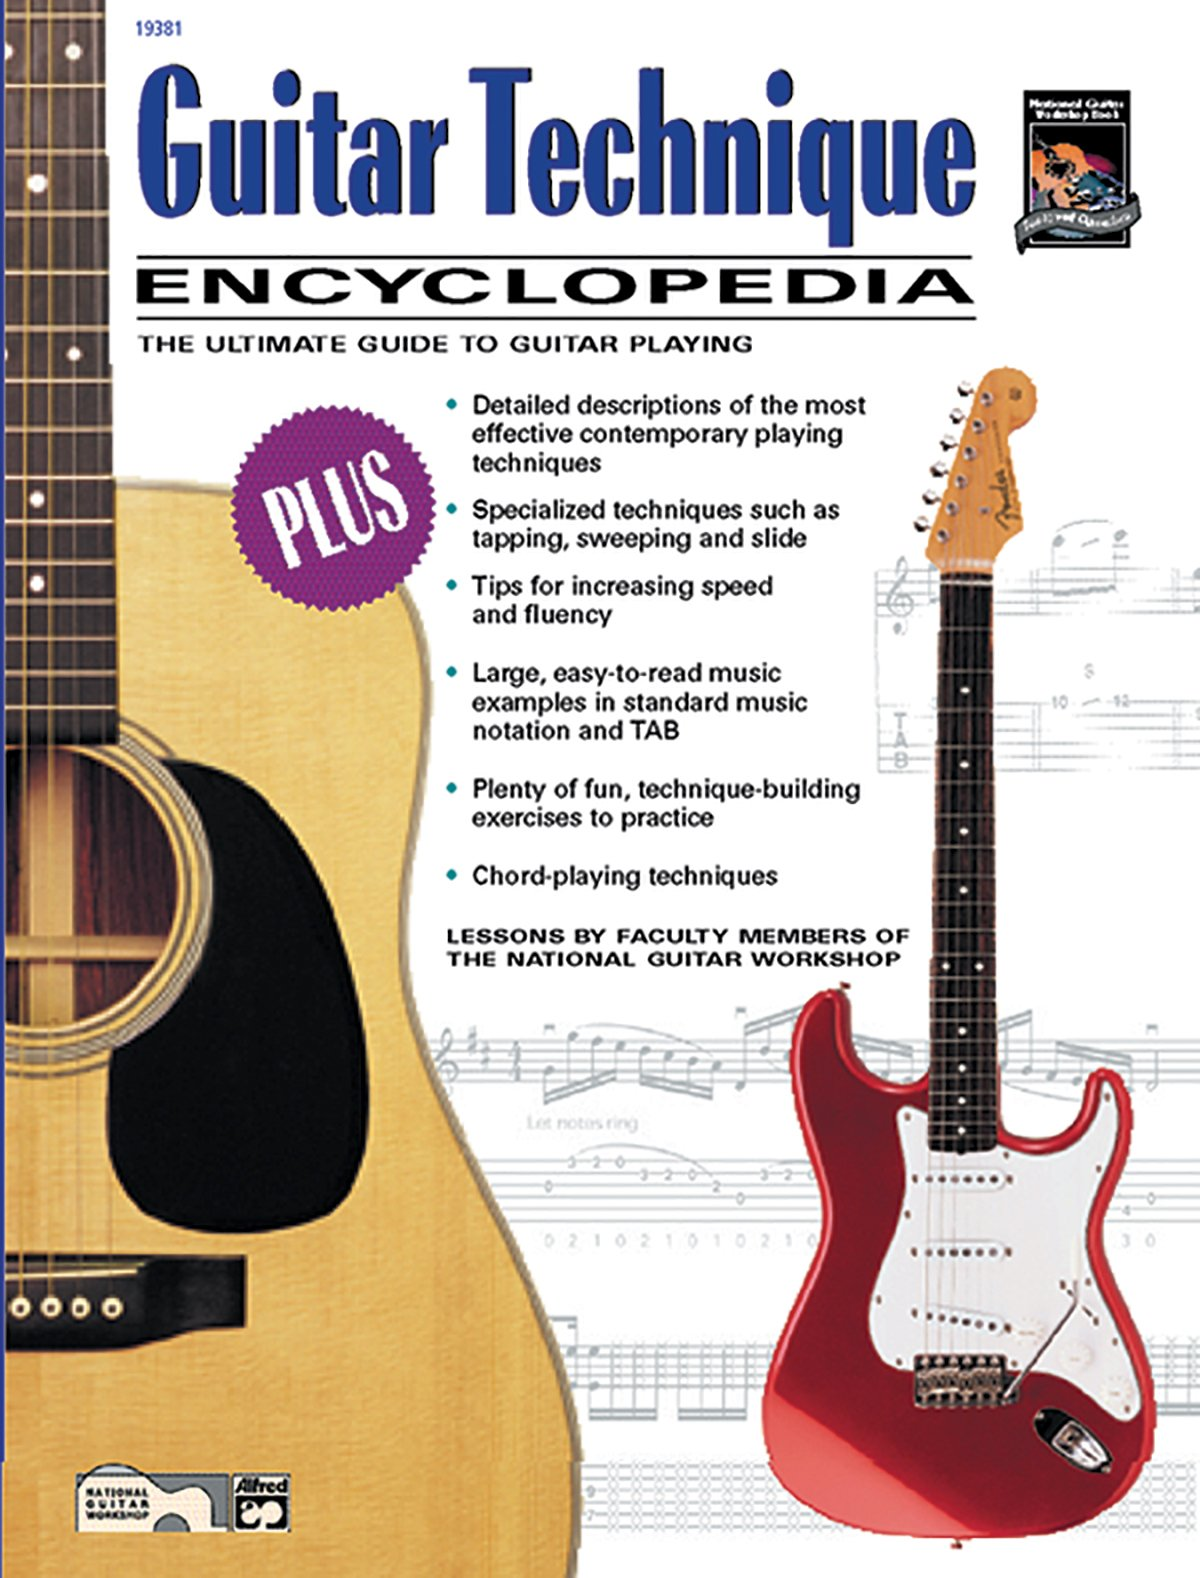 Guitar Technique Encyclopedia The Ultimate Guide To Guitar Playing